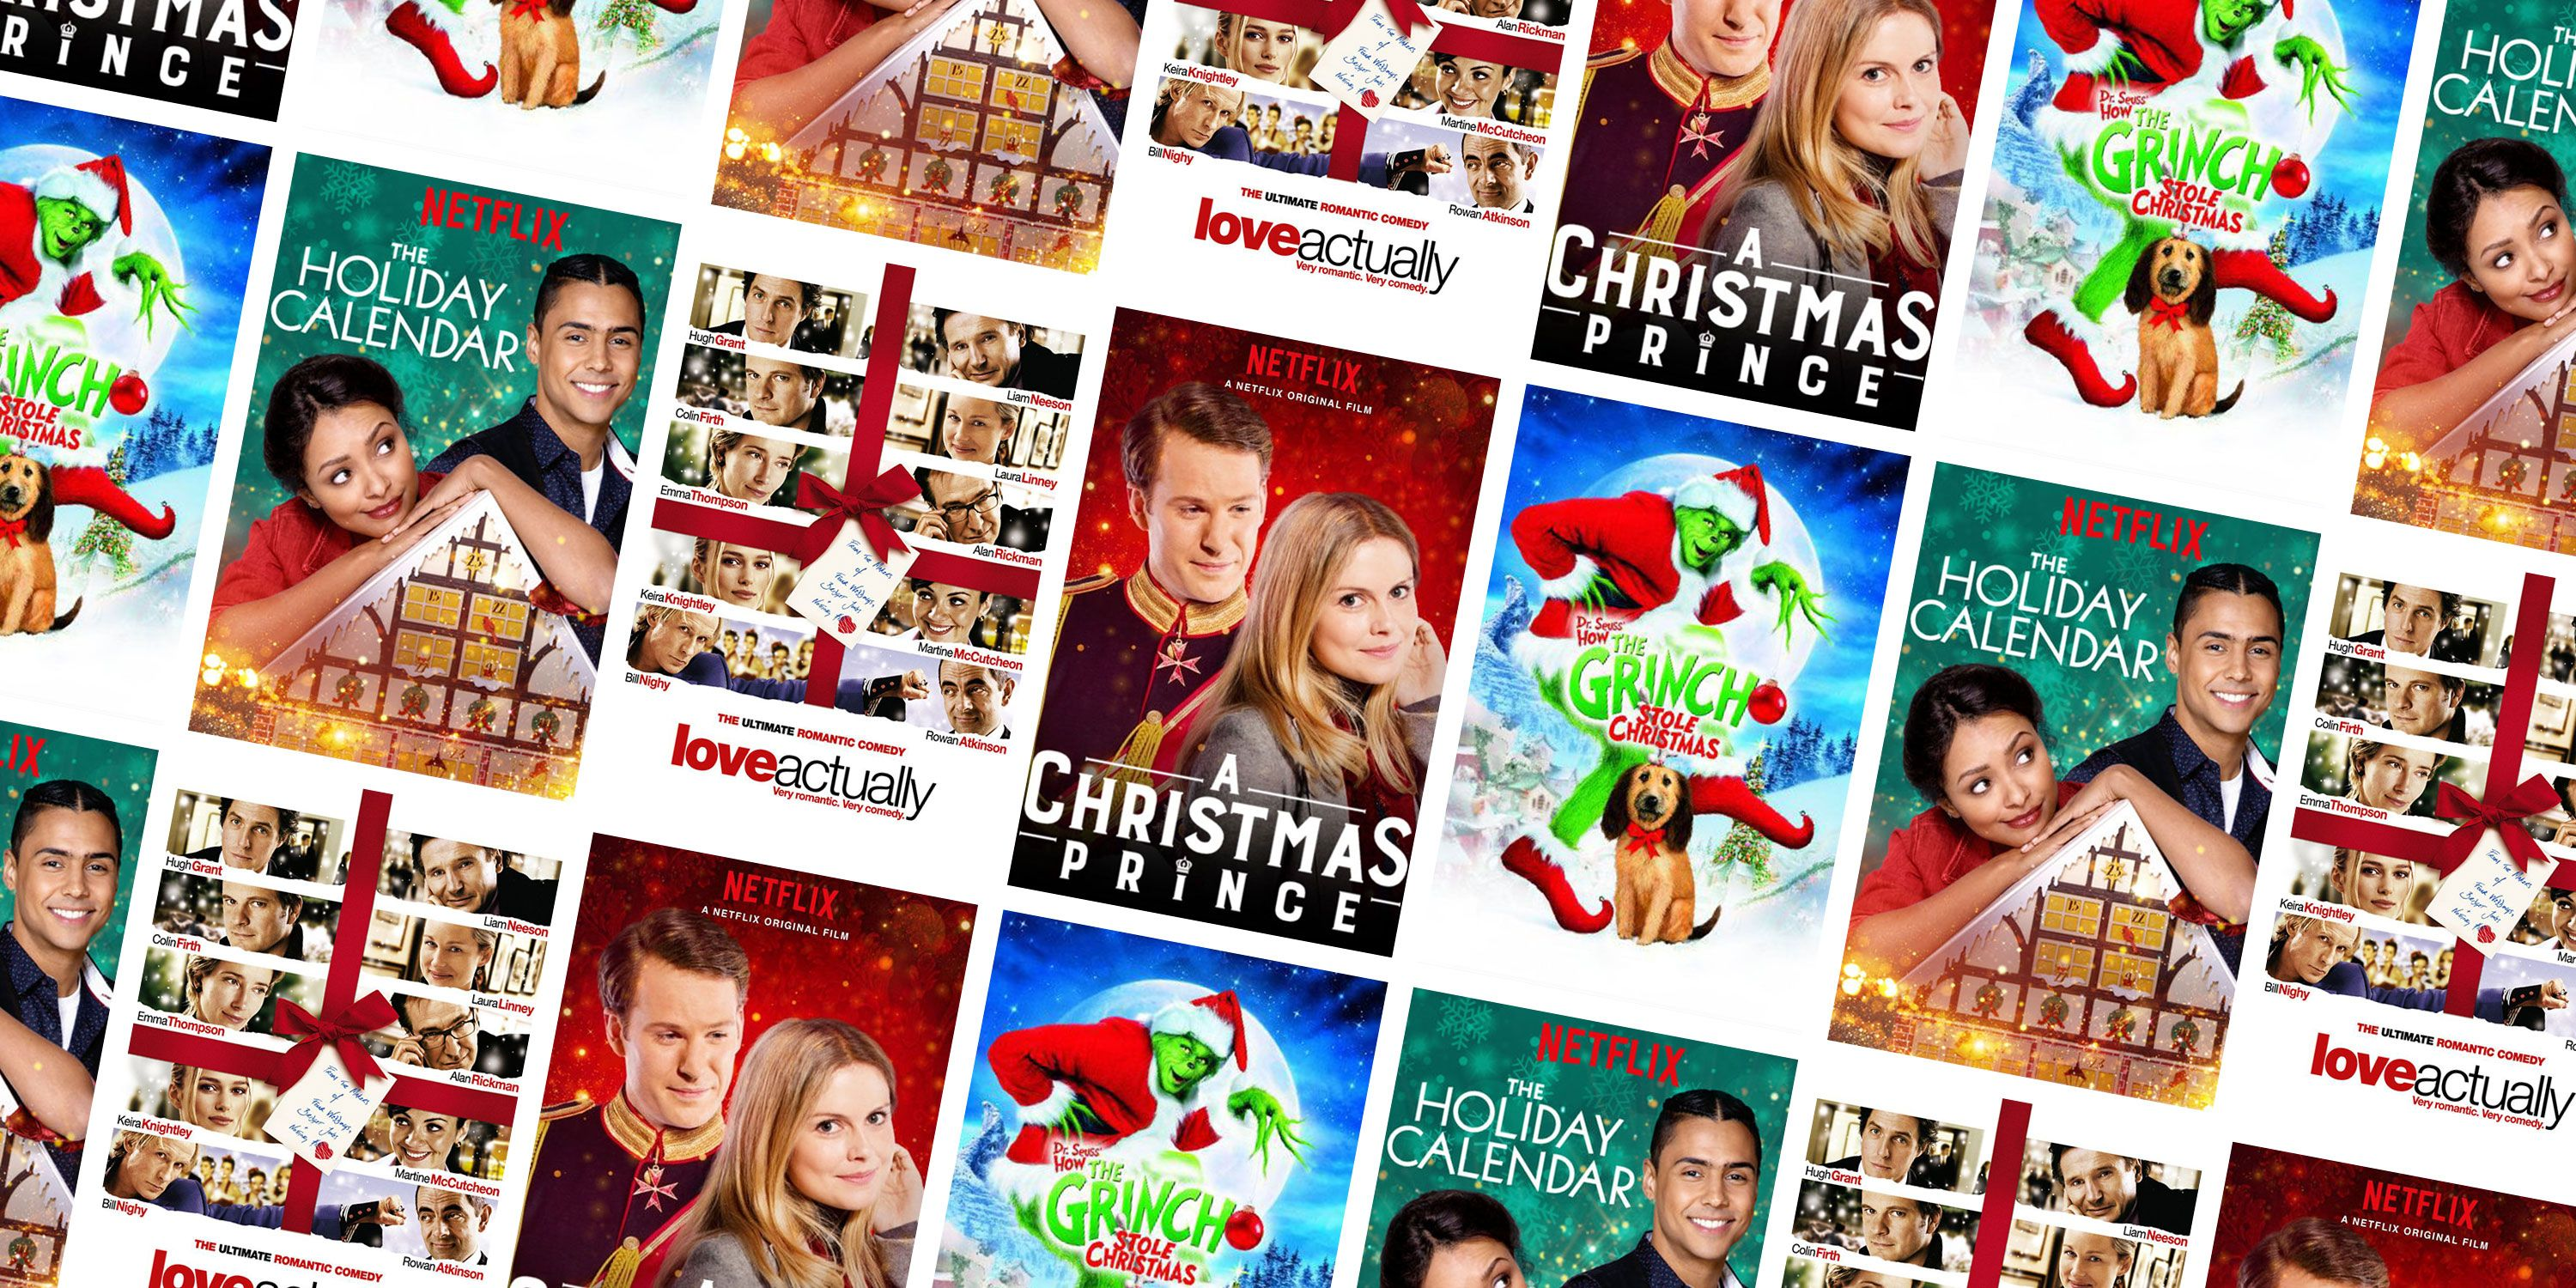 30+ Best Christmas Movies on Netflix - Good Holiday Movies on Netflix